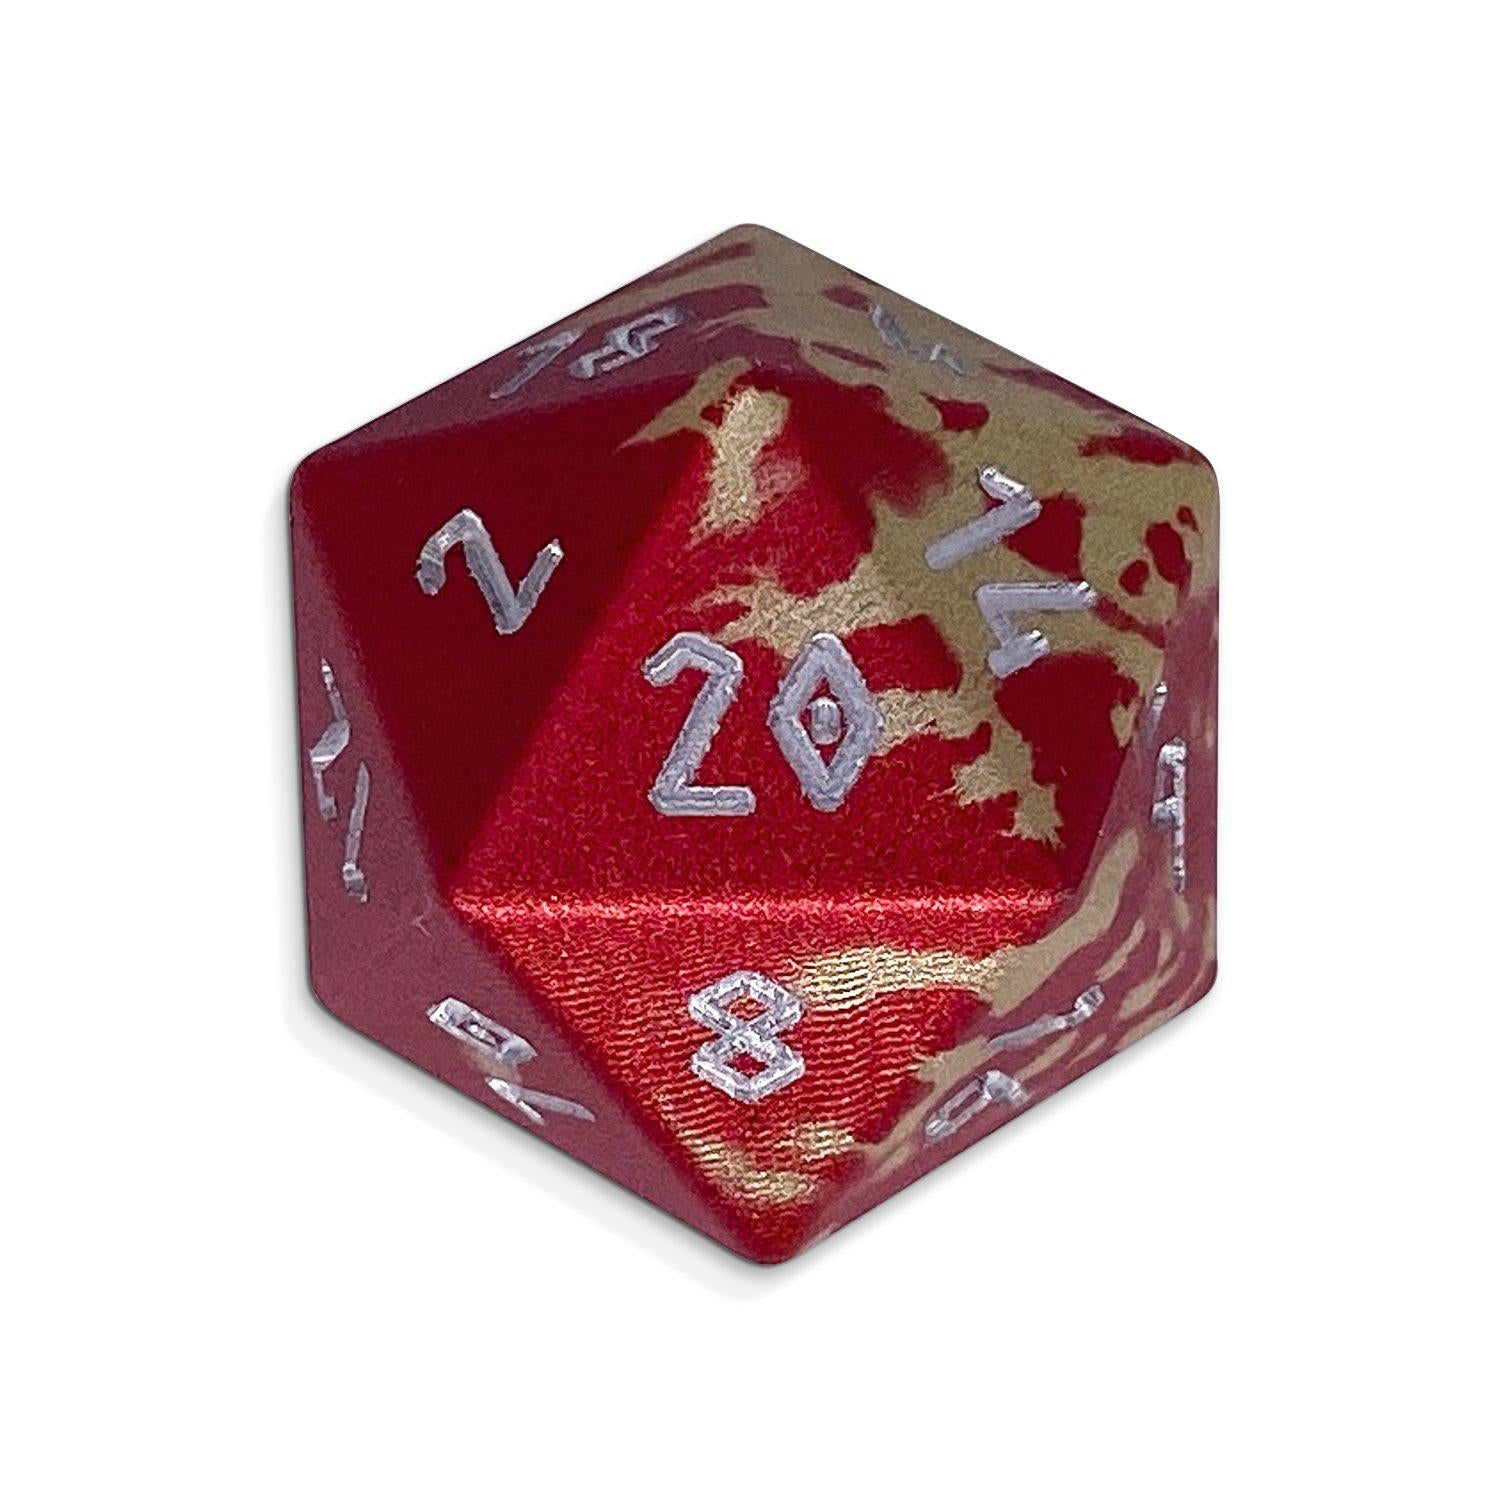 Single Wondrous Dice® D20 in Firebolt by Norse Foundry 6063 Aircraft Grade Aluminum